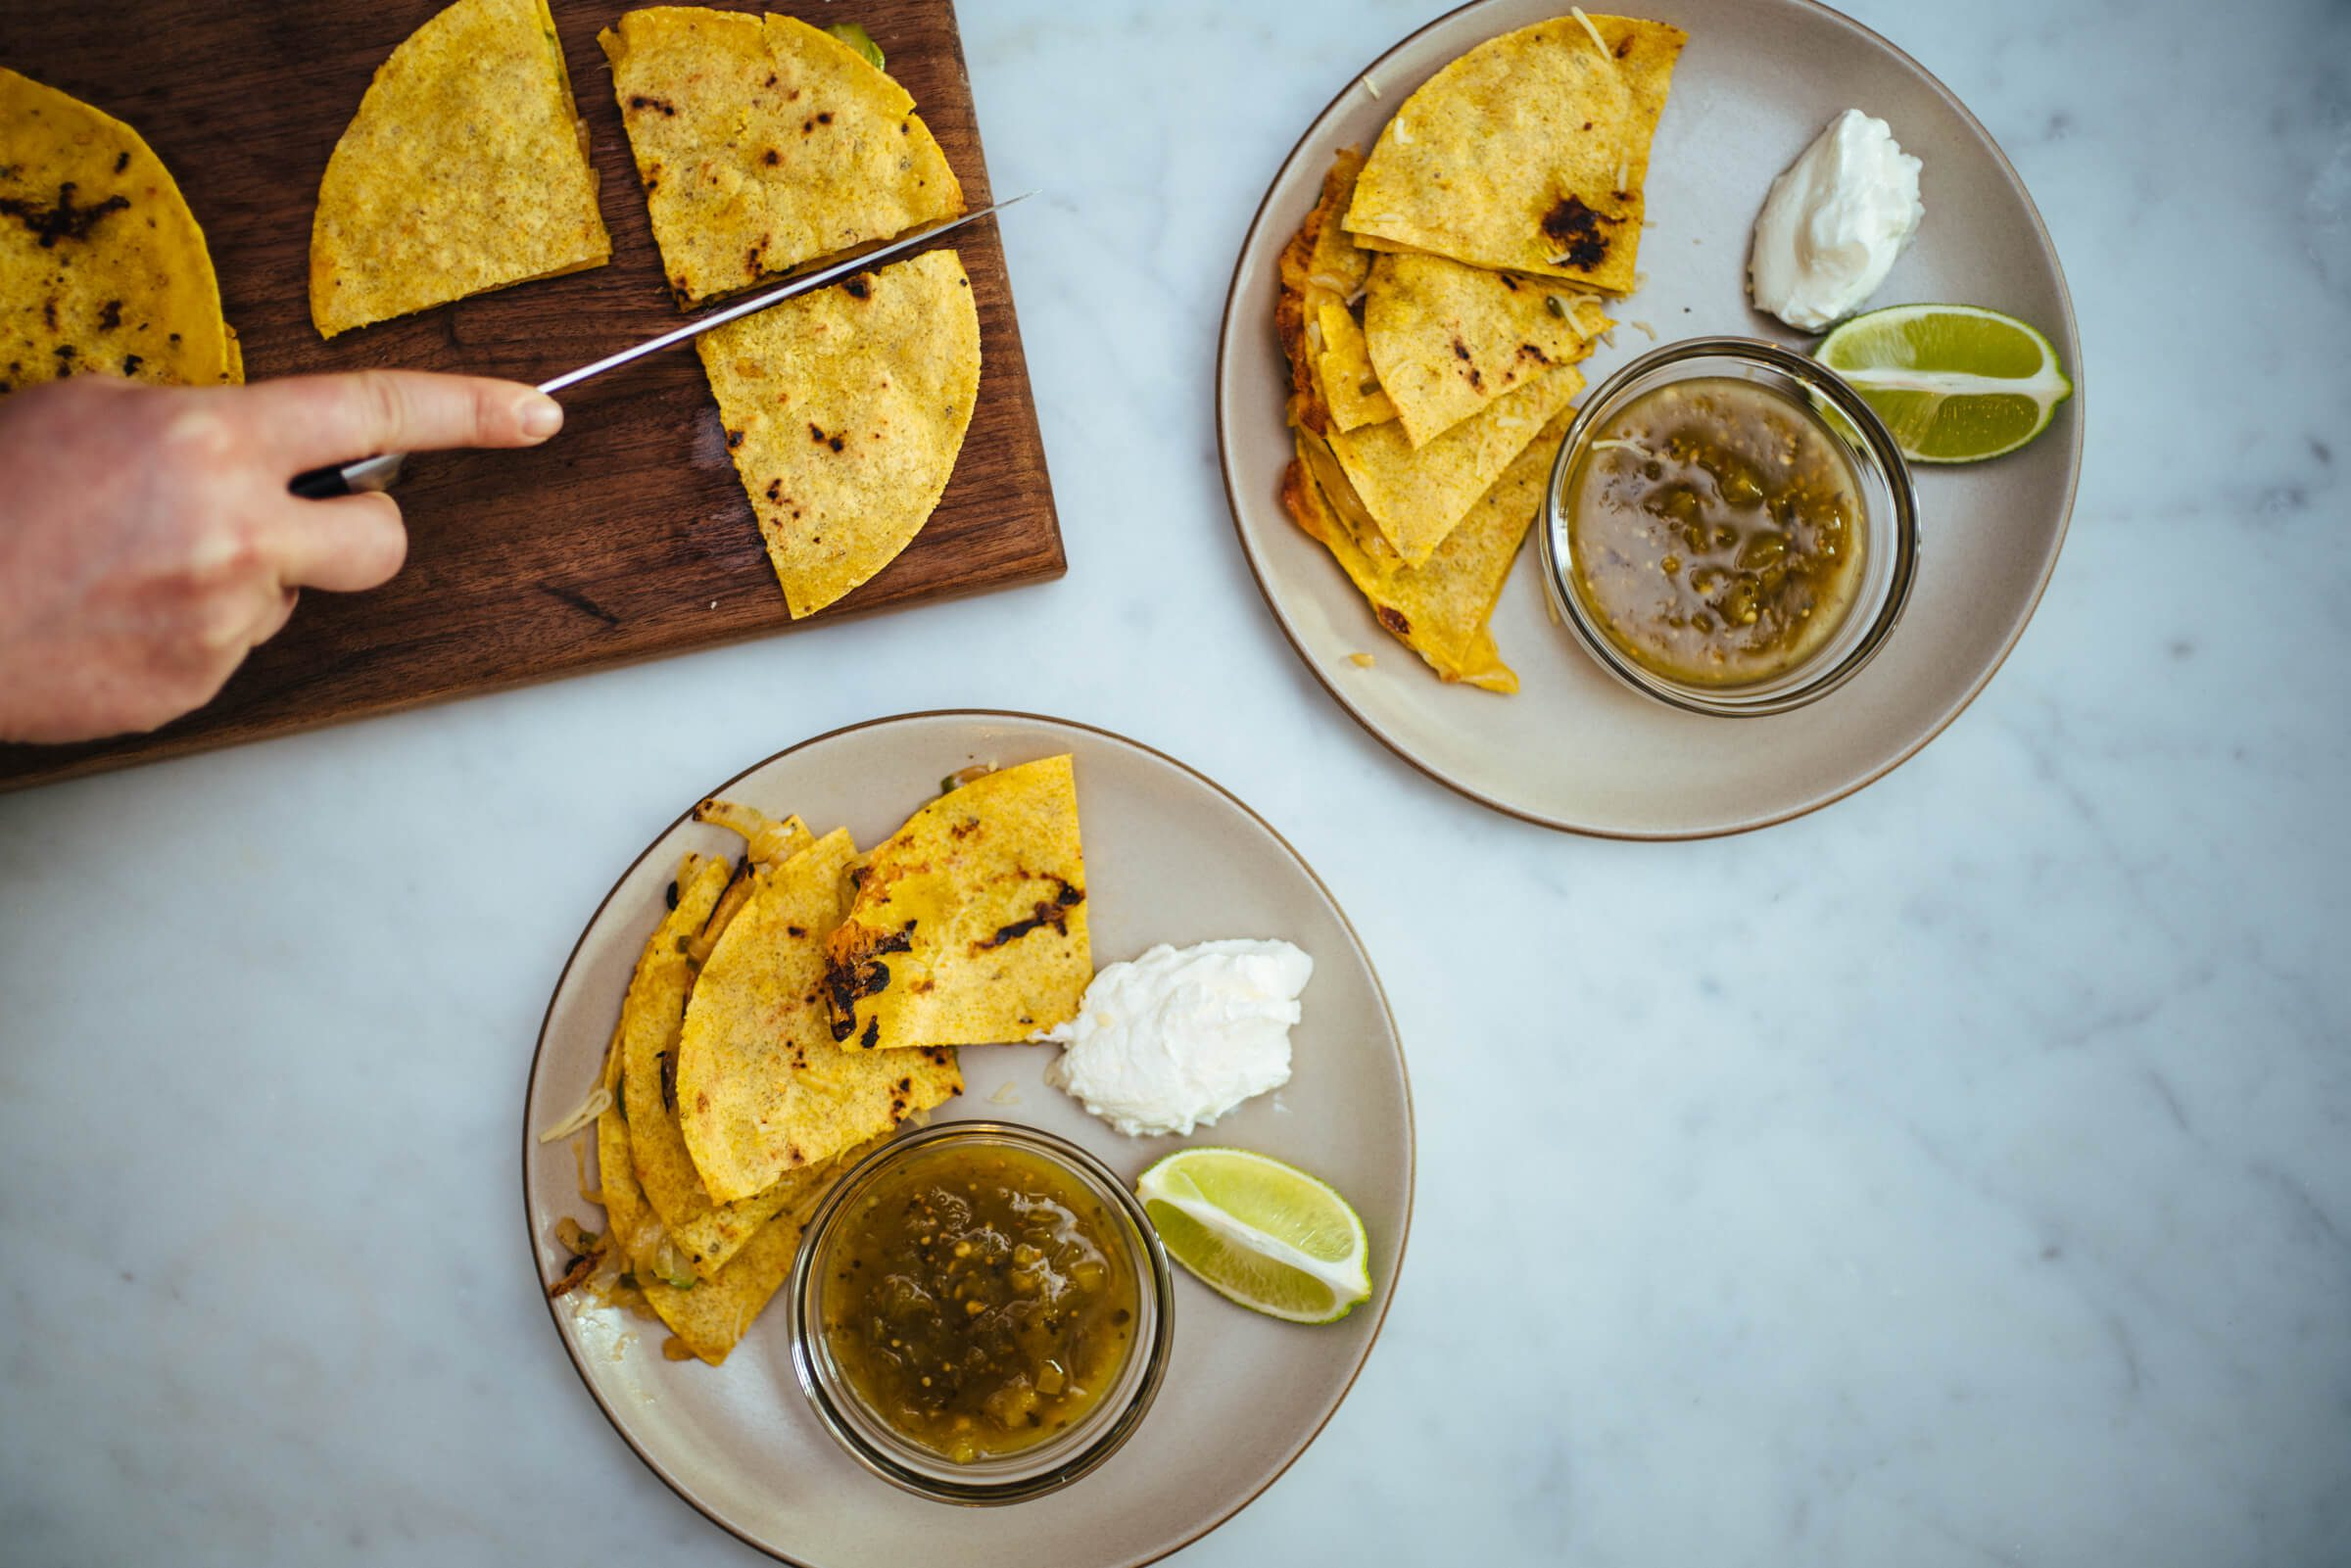 Asparagus quesadillas with tomatillo salsa, The Taste SF